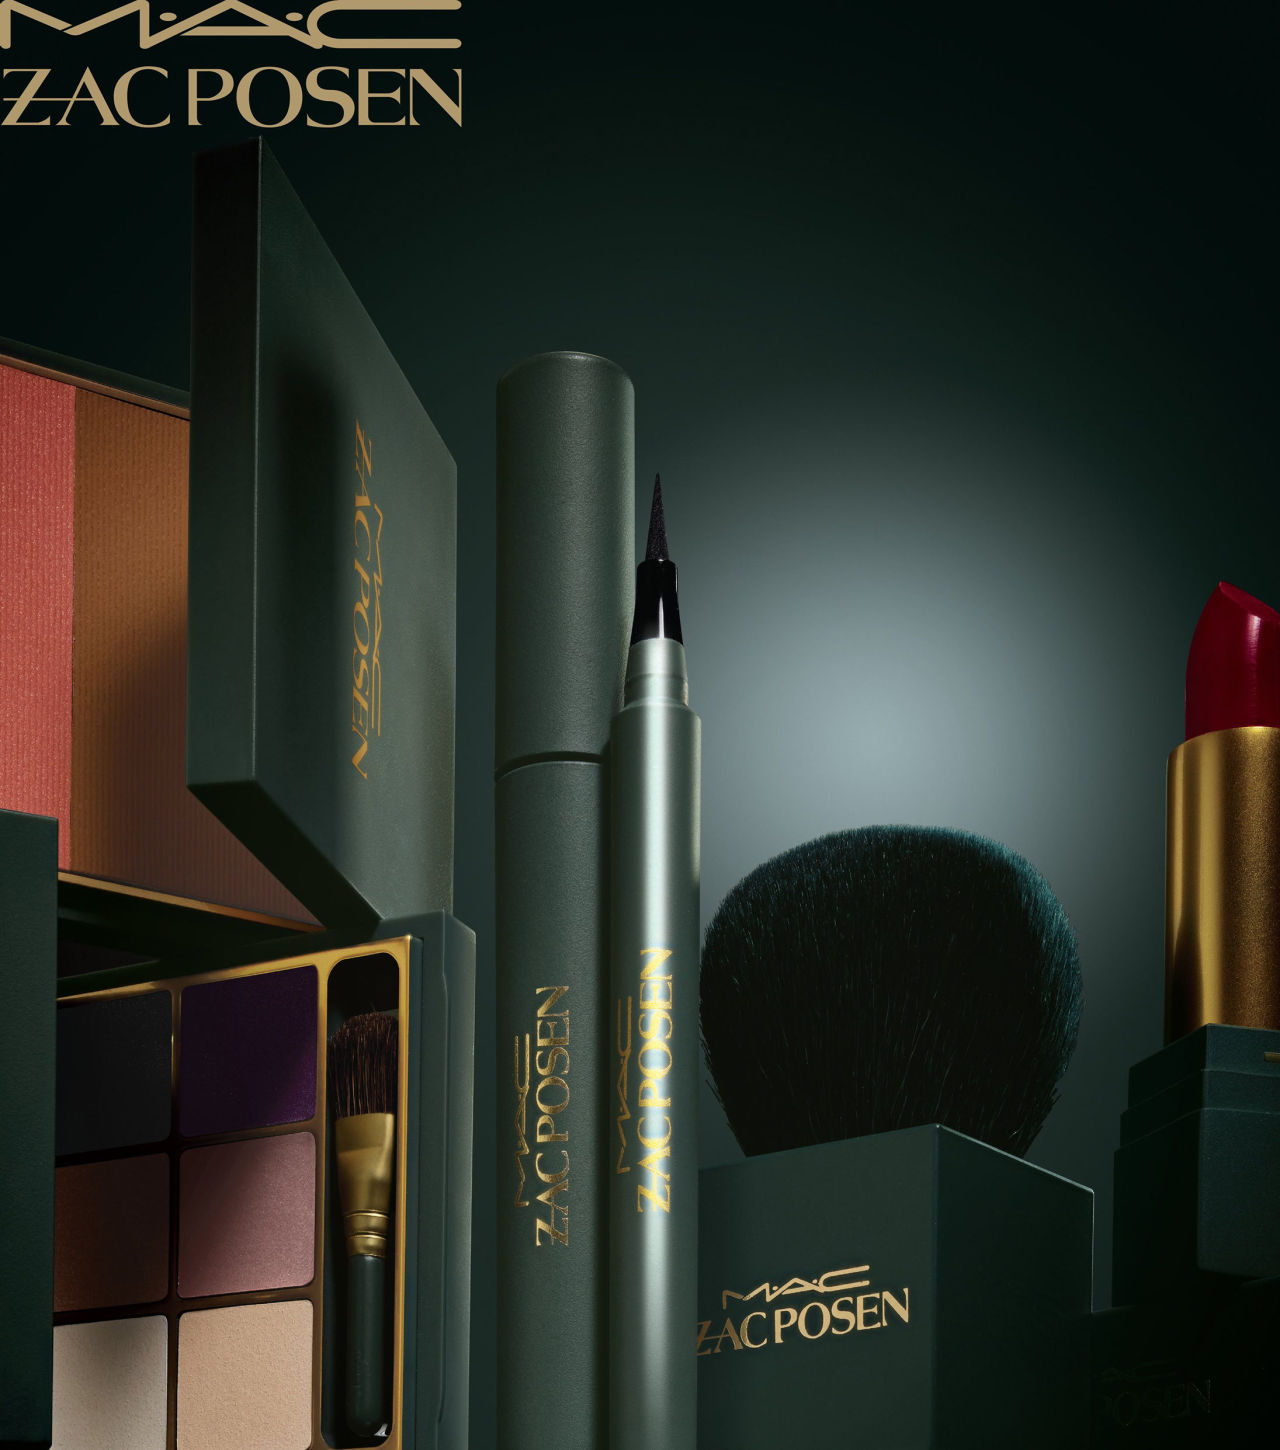 MAC Cosmetics x Zac Posen Collaboration